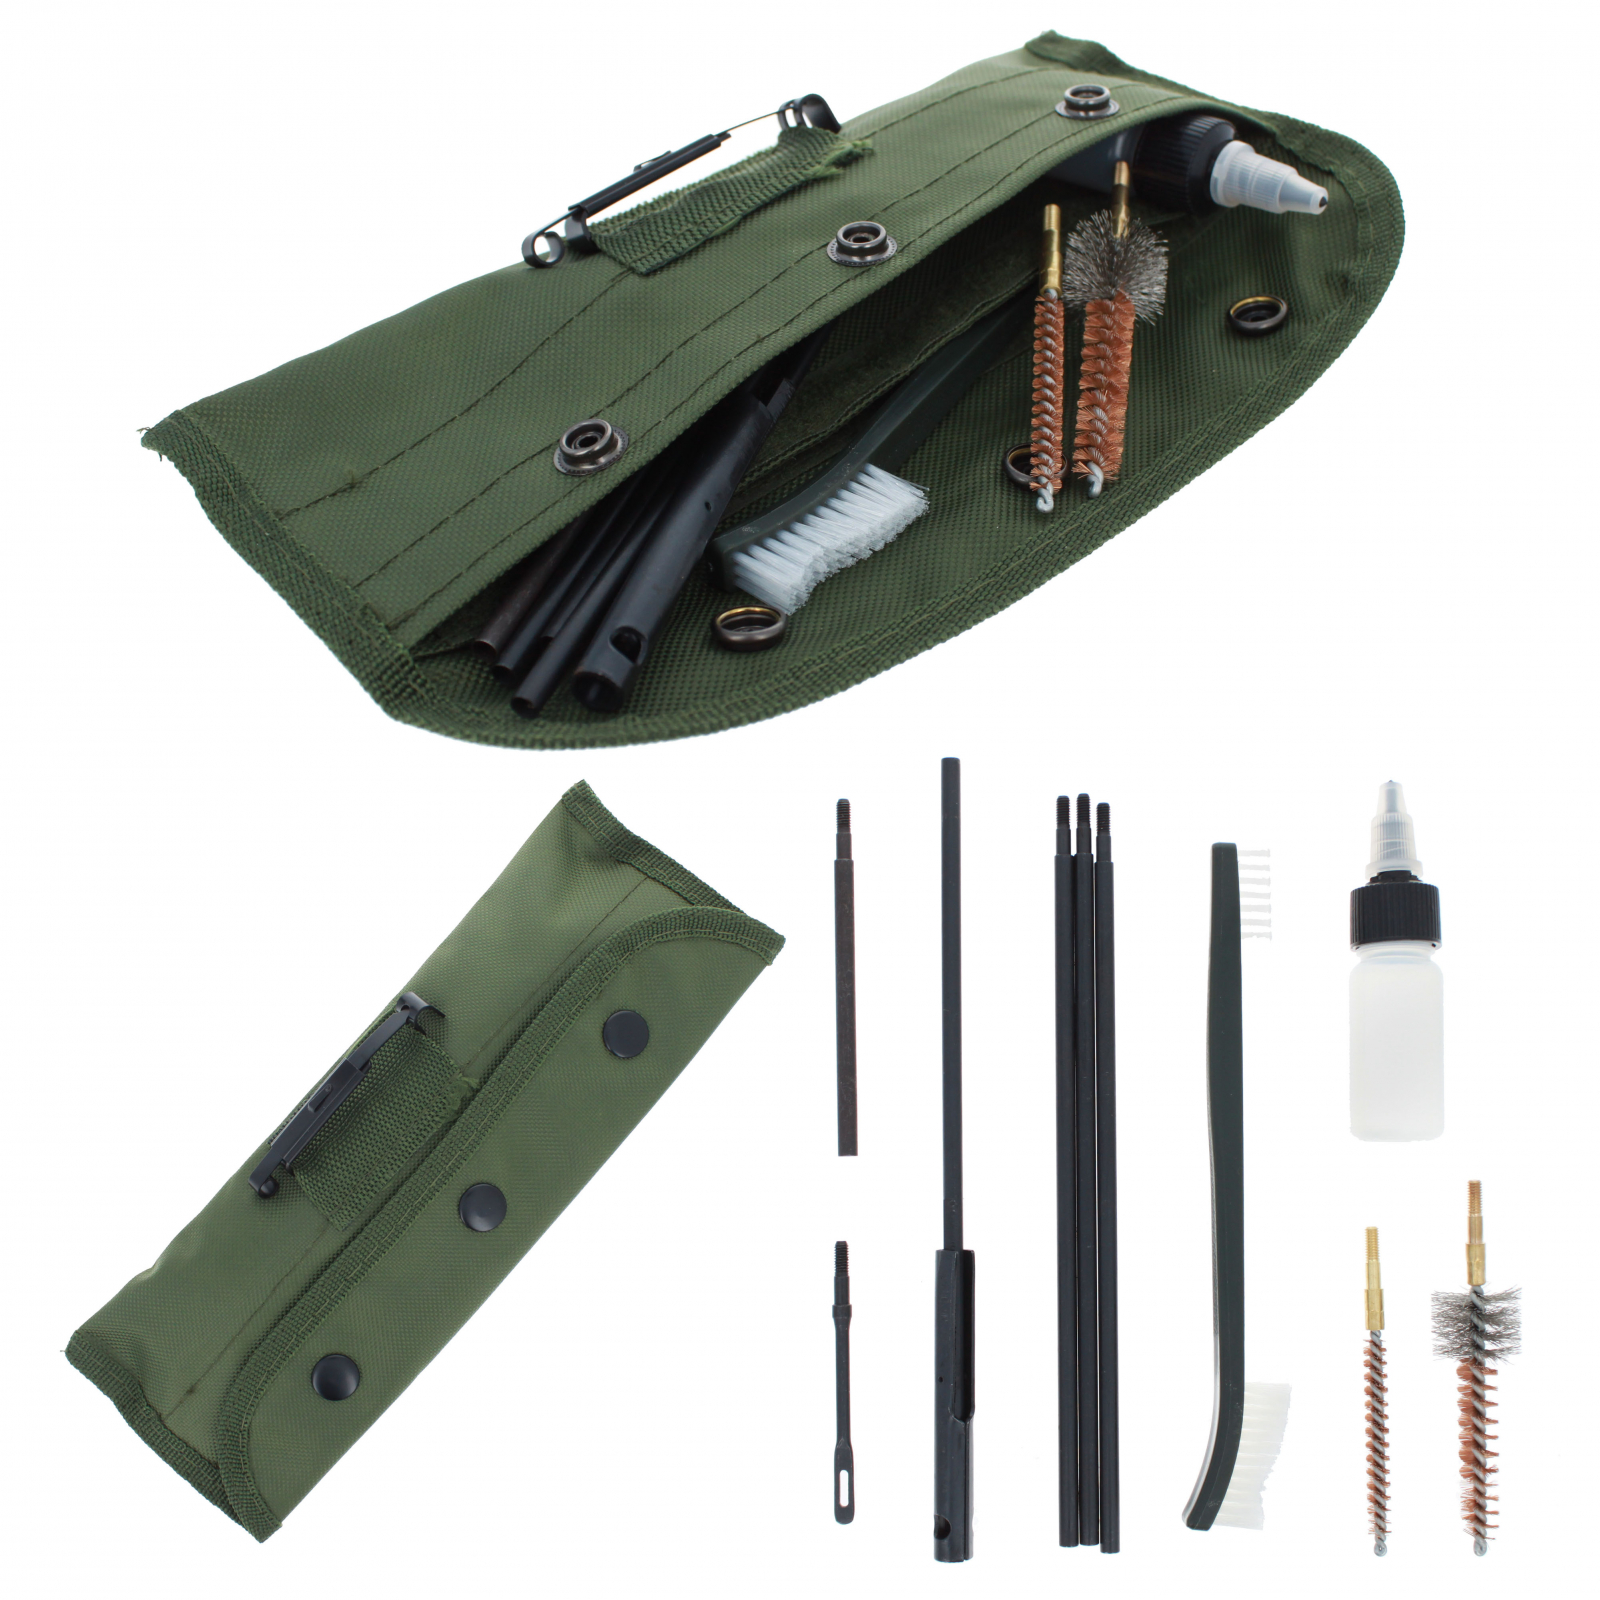 ASR Outdoor Gun Cleaning Kit 10 Piece Set in Canvas Pouch